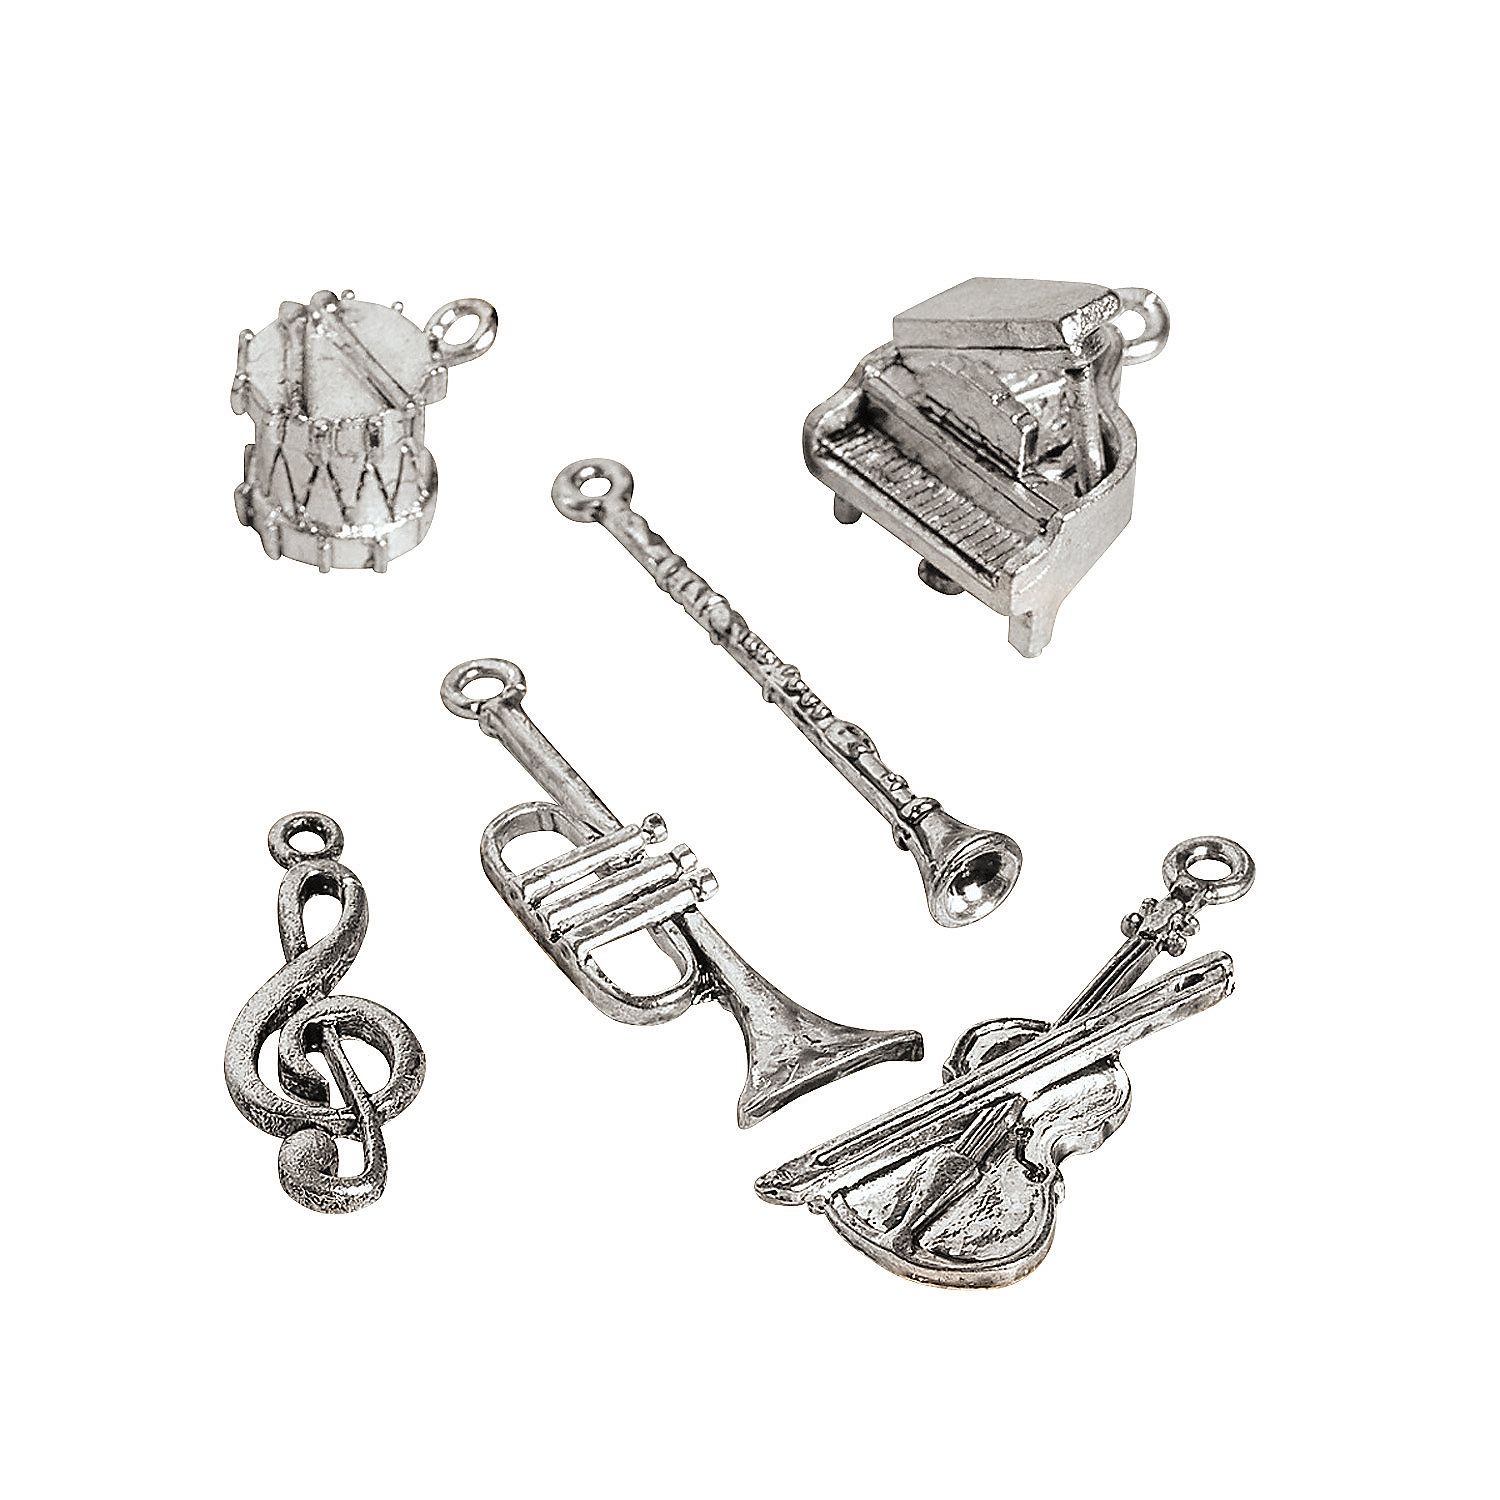 silvertone musical instrument charms oriental trading discontinued. Black Bedroom Furniture Sets. Home Design Ideas